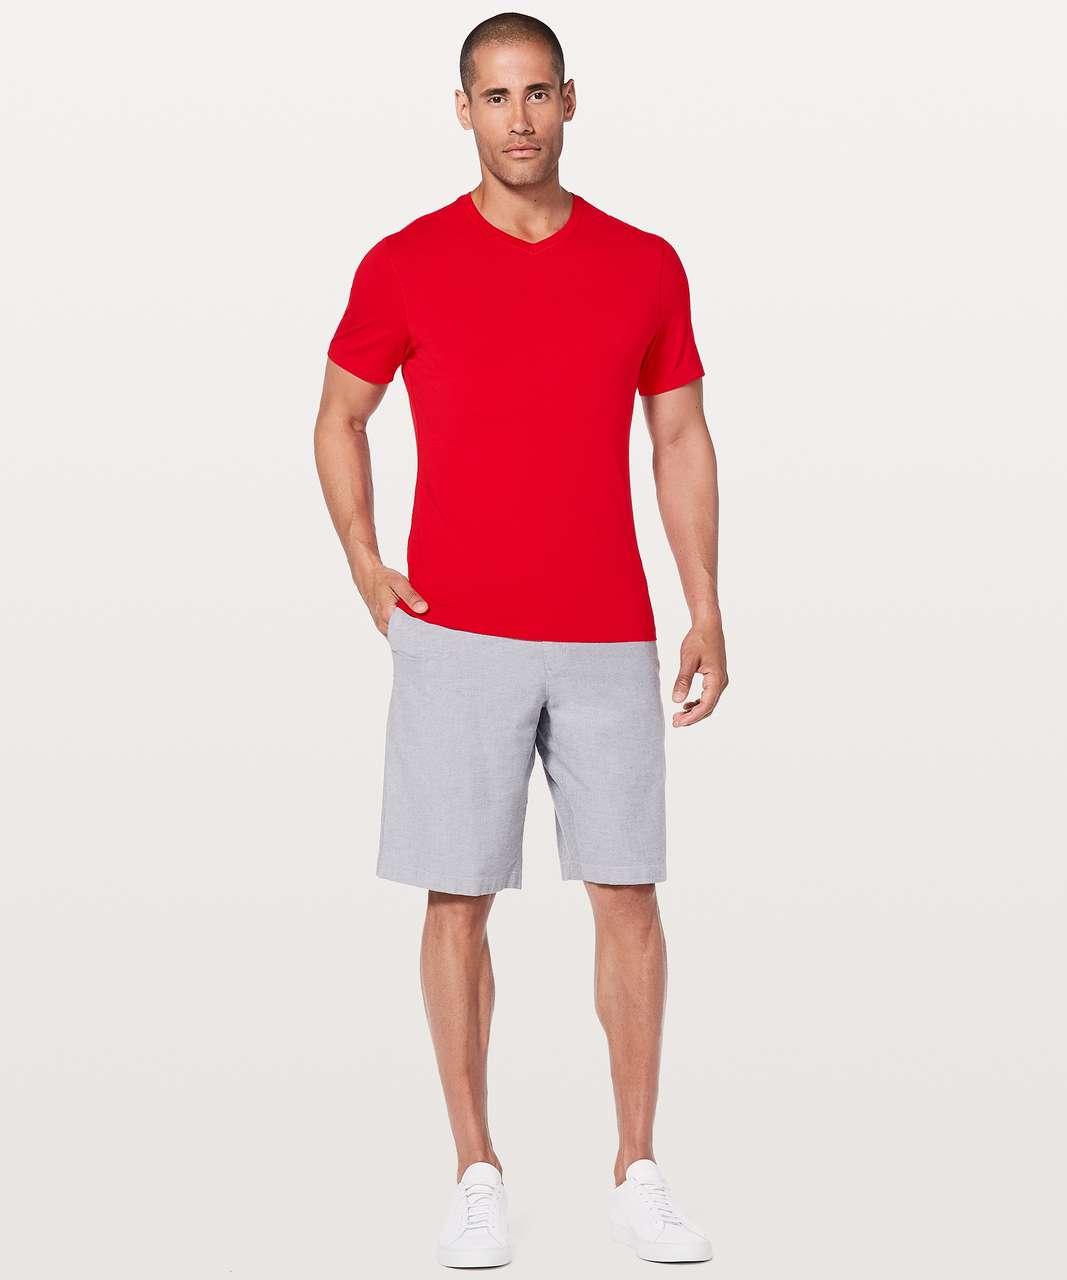 Lululemon 5 Year Basic V *Updated Fit - Bold Red